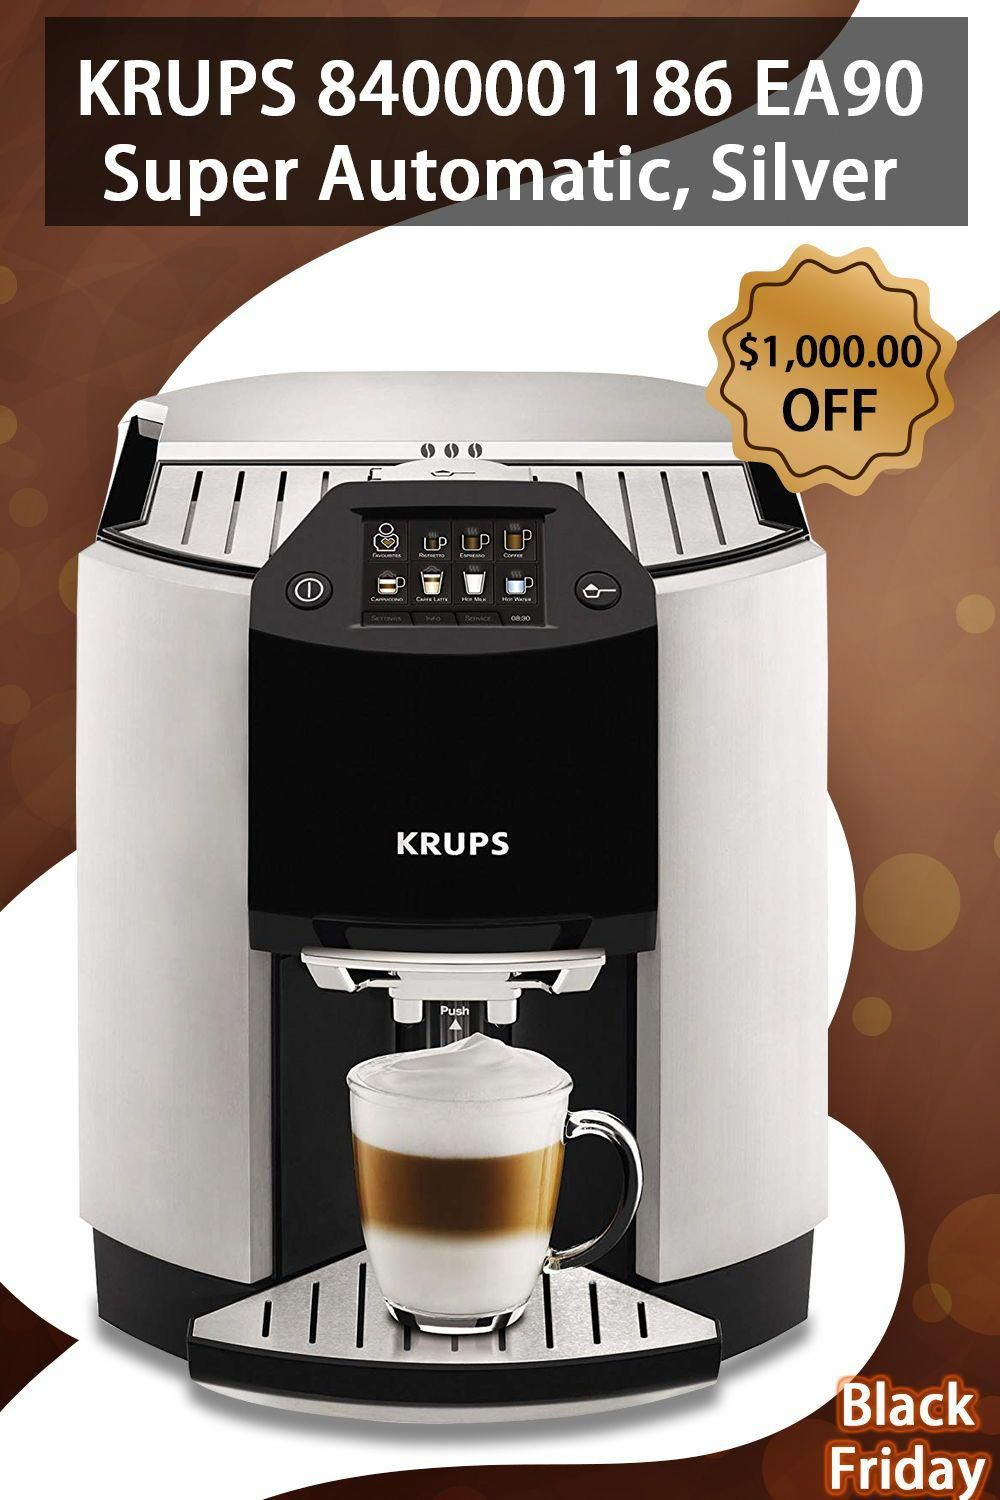 Super Automatic One Touch Cappuccino Machine, black friday